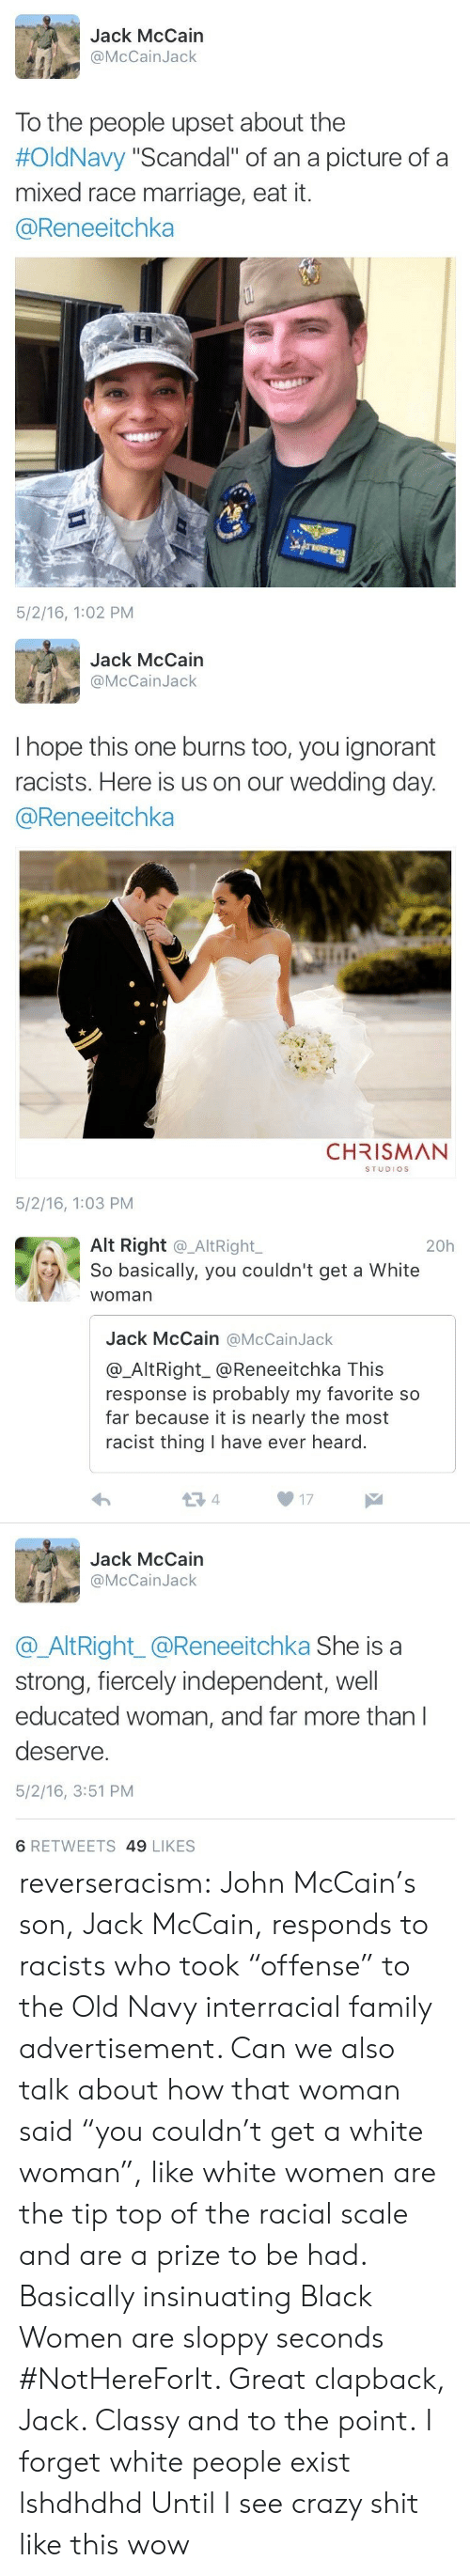 "Crazy, Family, and Ignorant: Jack McCain  @McCainJack  To the people upset about the  #OldNavy ""Scandal"" of an a picture of a  mixed race marriage, eat it.  @Reneeitchka  5/2/16, 1:02 PM   Jack McCain  @McCainJack  I hope this one burns too, you ignorant  racists. Here is us on our wedding day  @Reneeitchka  CHRISMAN  STUDIOS  5/2/16, 1:03 PM   Alt Right @_AltRight,  So basically, you couldn't get a White  woman  20h  Jack McCain @McCainJack  @_AltRight_@Reneeitchka This  response is probably my favorite so  far because it is nearly the most  racist thing I have ever heard.  13 4  17  Jack McCain  @McCainJack  @AltRight_@Reneeitchka She is a  strong, fiercely independent, well  educated woman, and far more than l  deserve.  5/2/16, 3:51 PM  6 RETWEETS 49 LIKES reverseracism:  John McCain's son, Jack McCain, responds to racists who took ""offense"" to the Old Navy interracial family advertisement.   Can we also talk about how that woman said ""you couldn't get a white woman"", like white women are the tip top of the racial scale and are a prize to be had. Basically insinuating Black Women are sloppy seconds #NotHereForIt. Great clapback, Jack. Classy and to the point.   I forget white people exist lshdhdhd Until I see crazy shit like this wow"